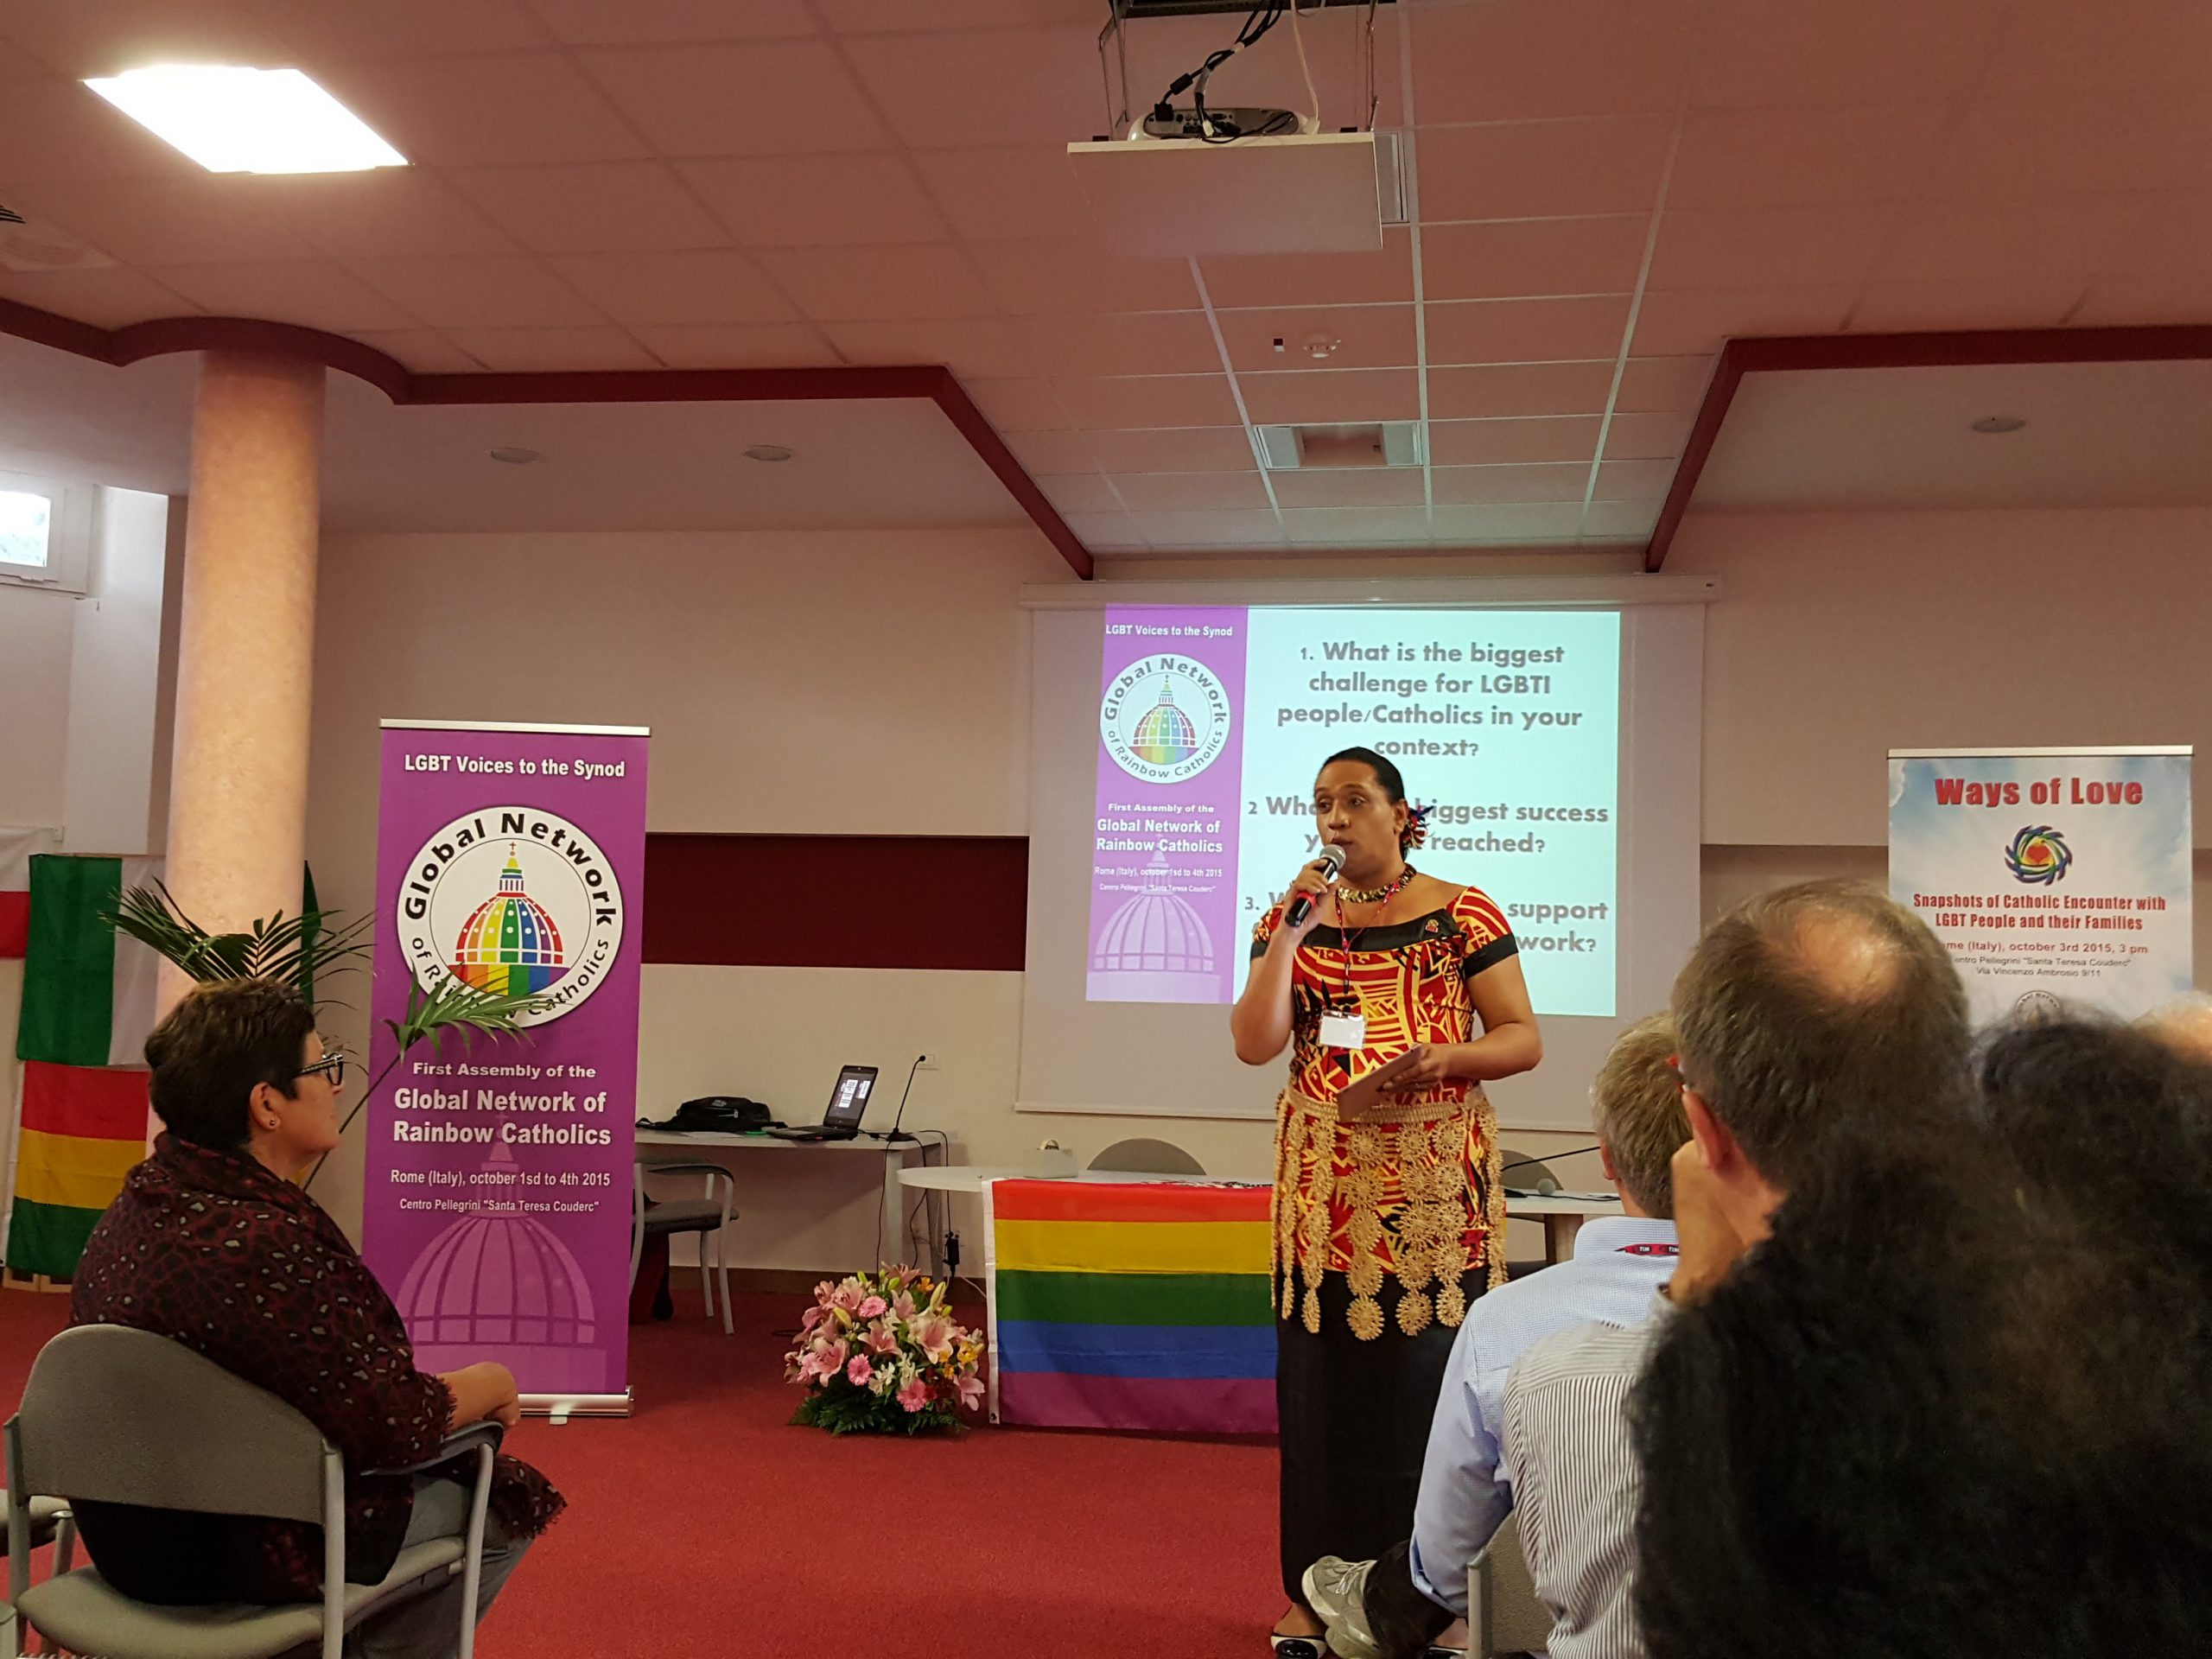 Transgender and Intersex people are invited to the table of the Church